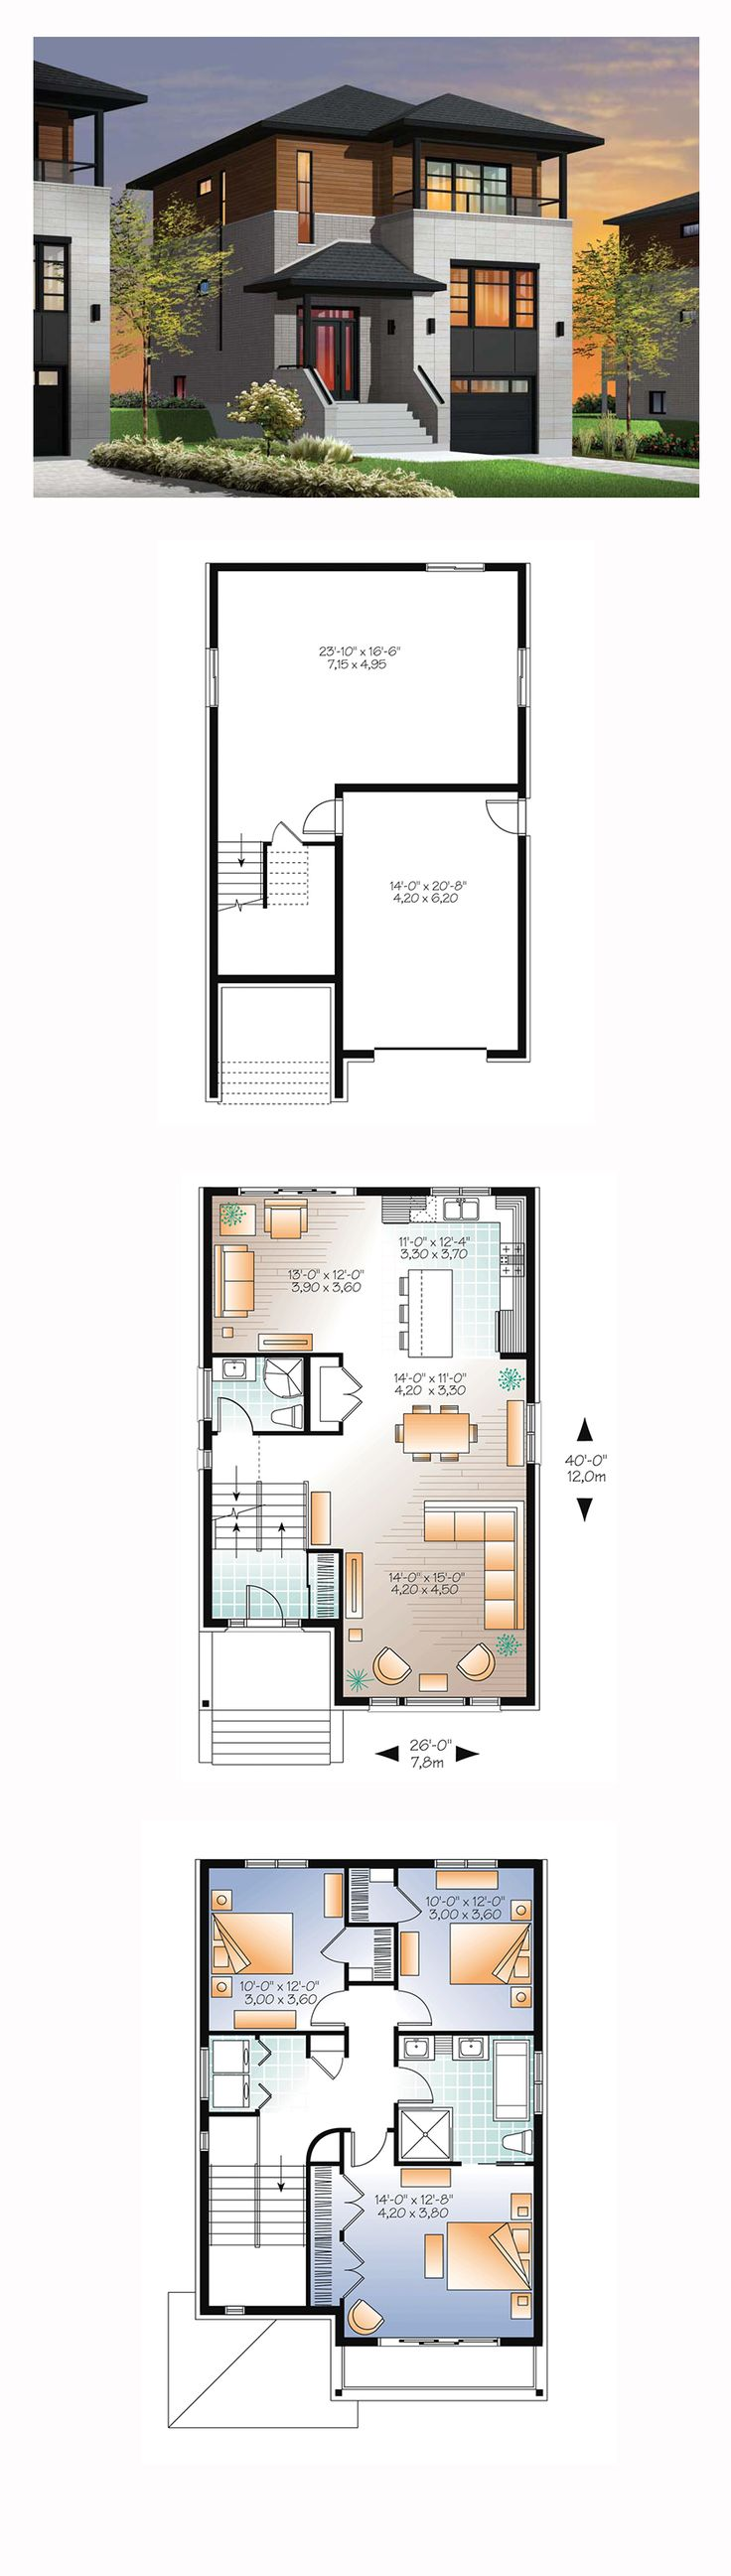 chrome hearts eyeglasses knight glodean white net worth of michael Modern House Plan 76362   Total Living Area  1883 sq  ft   3 bedrooms and 2 bathrooms   modernhome